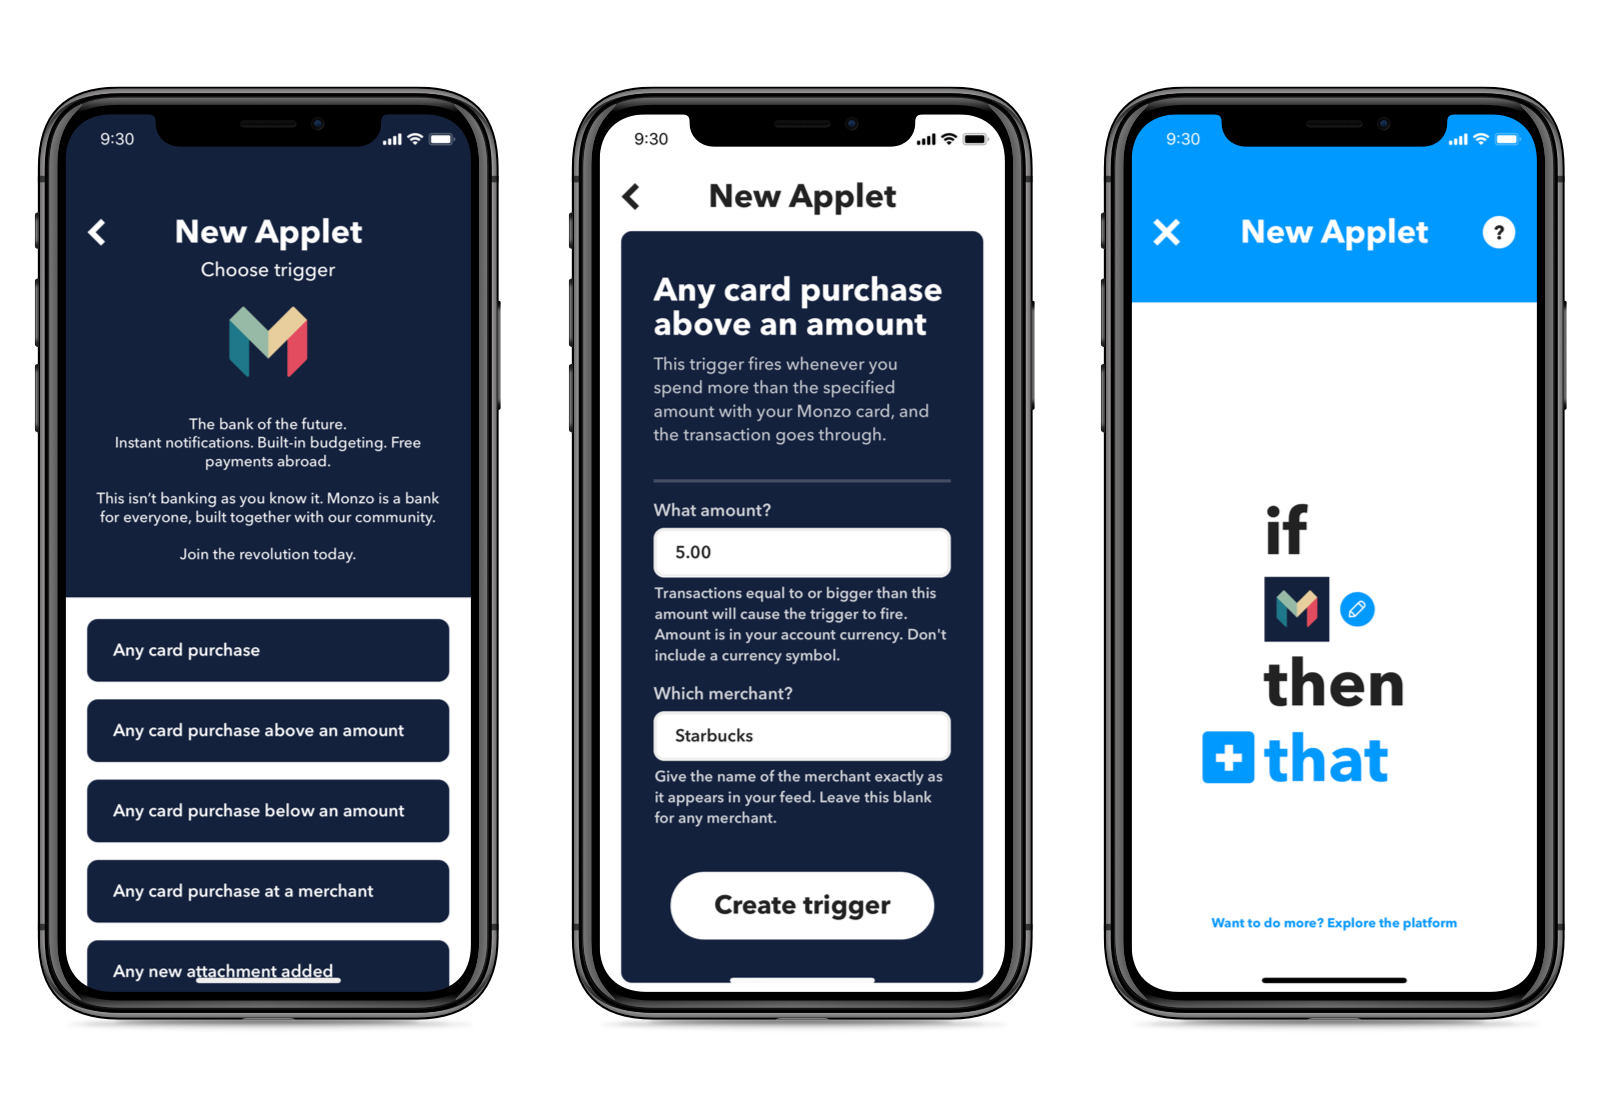 how to create an applet